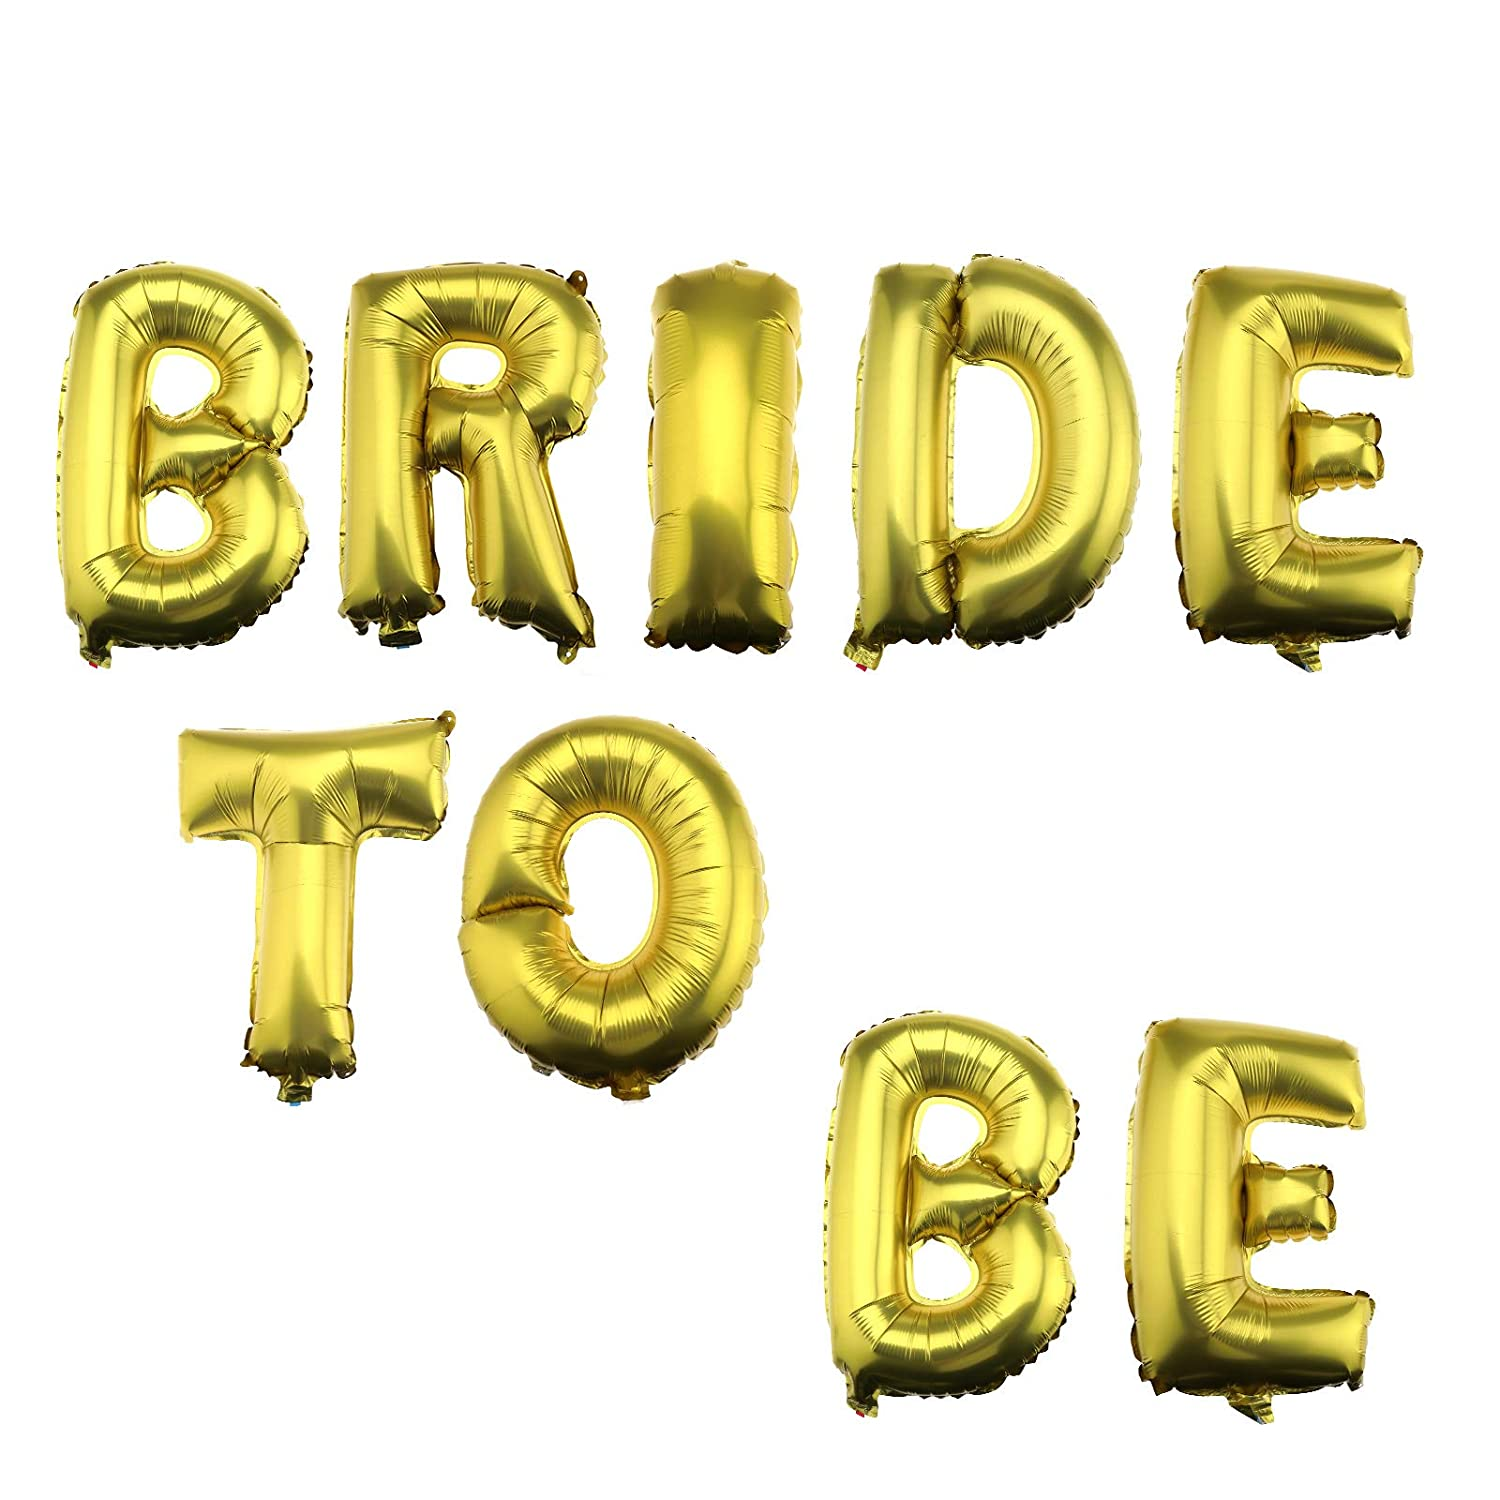 OTOTEC Shiny 16 Foil Balloons BRIDE TO BE Gold Letter for Wedding Bridal Hen Party